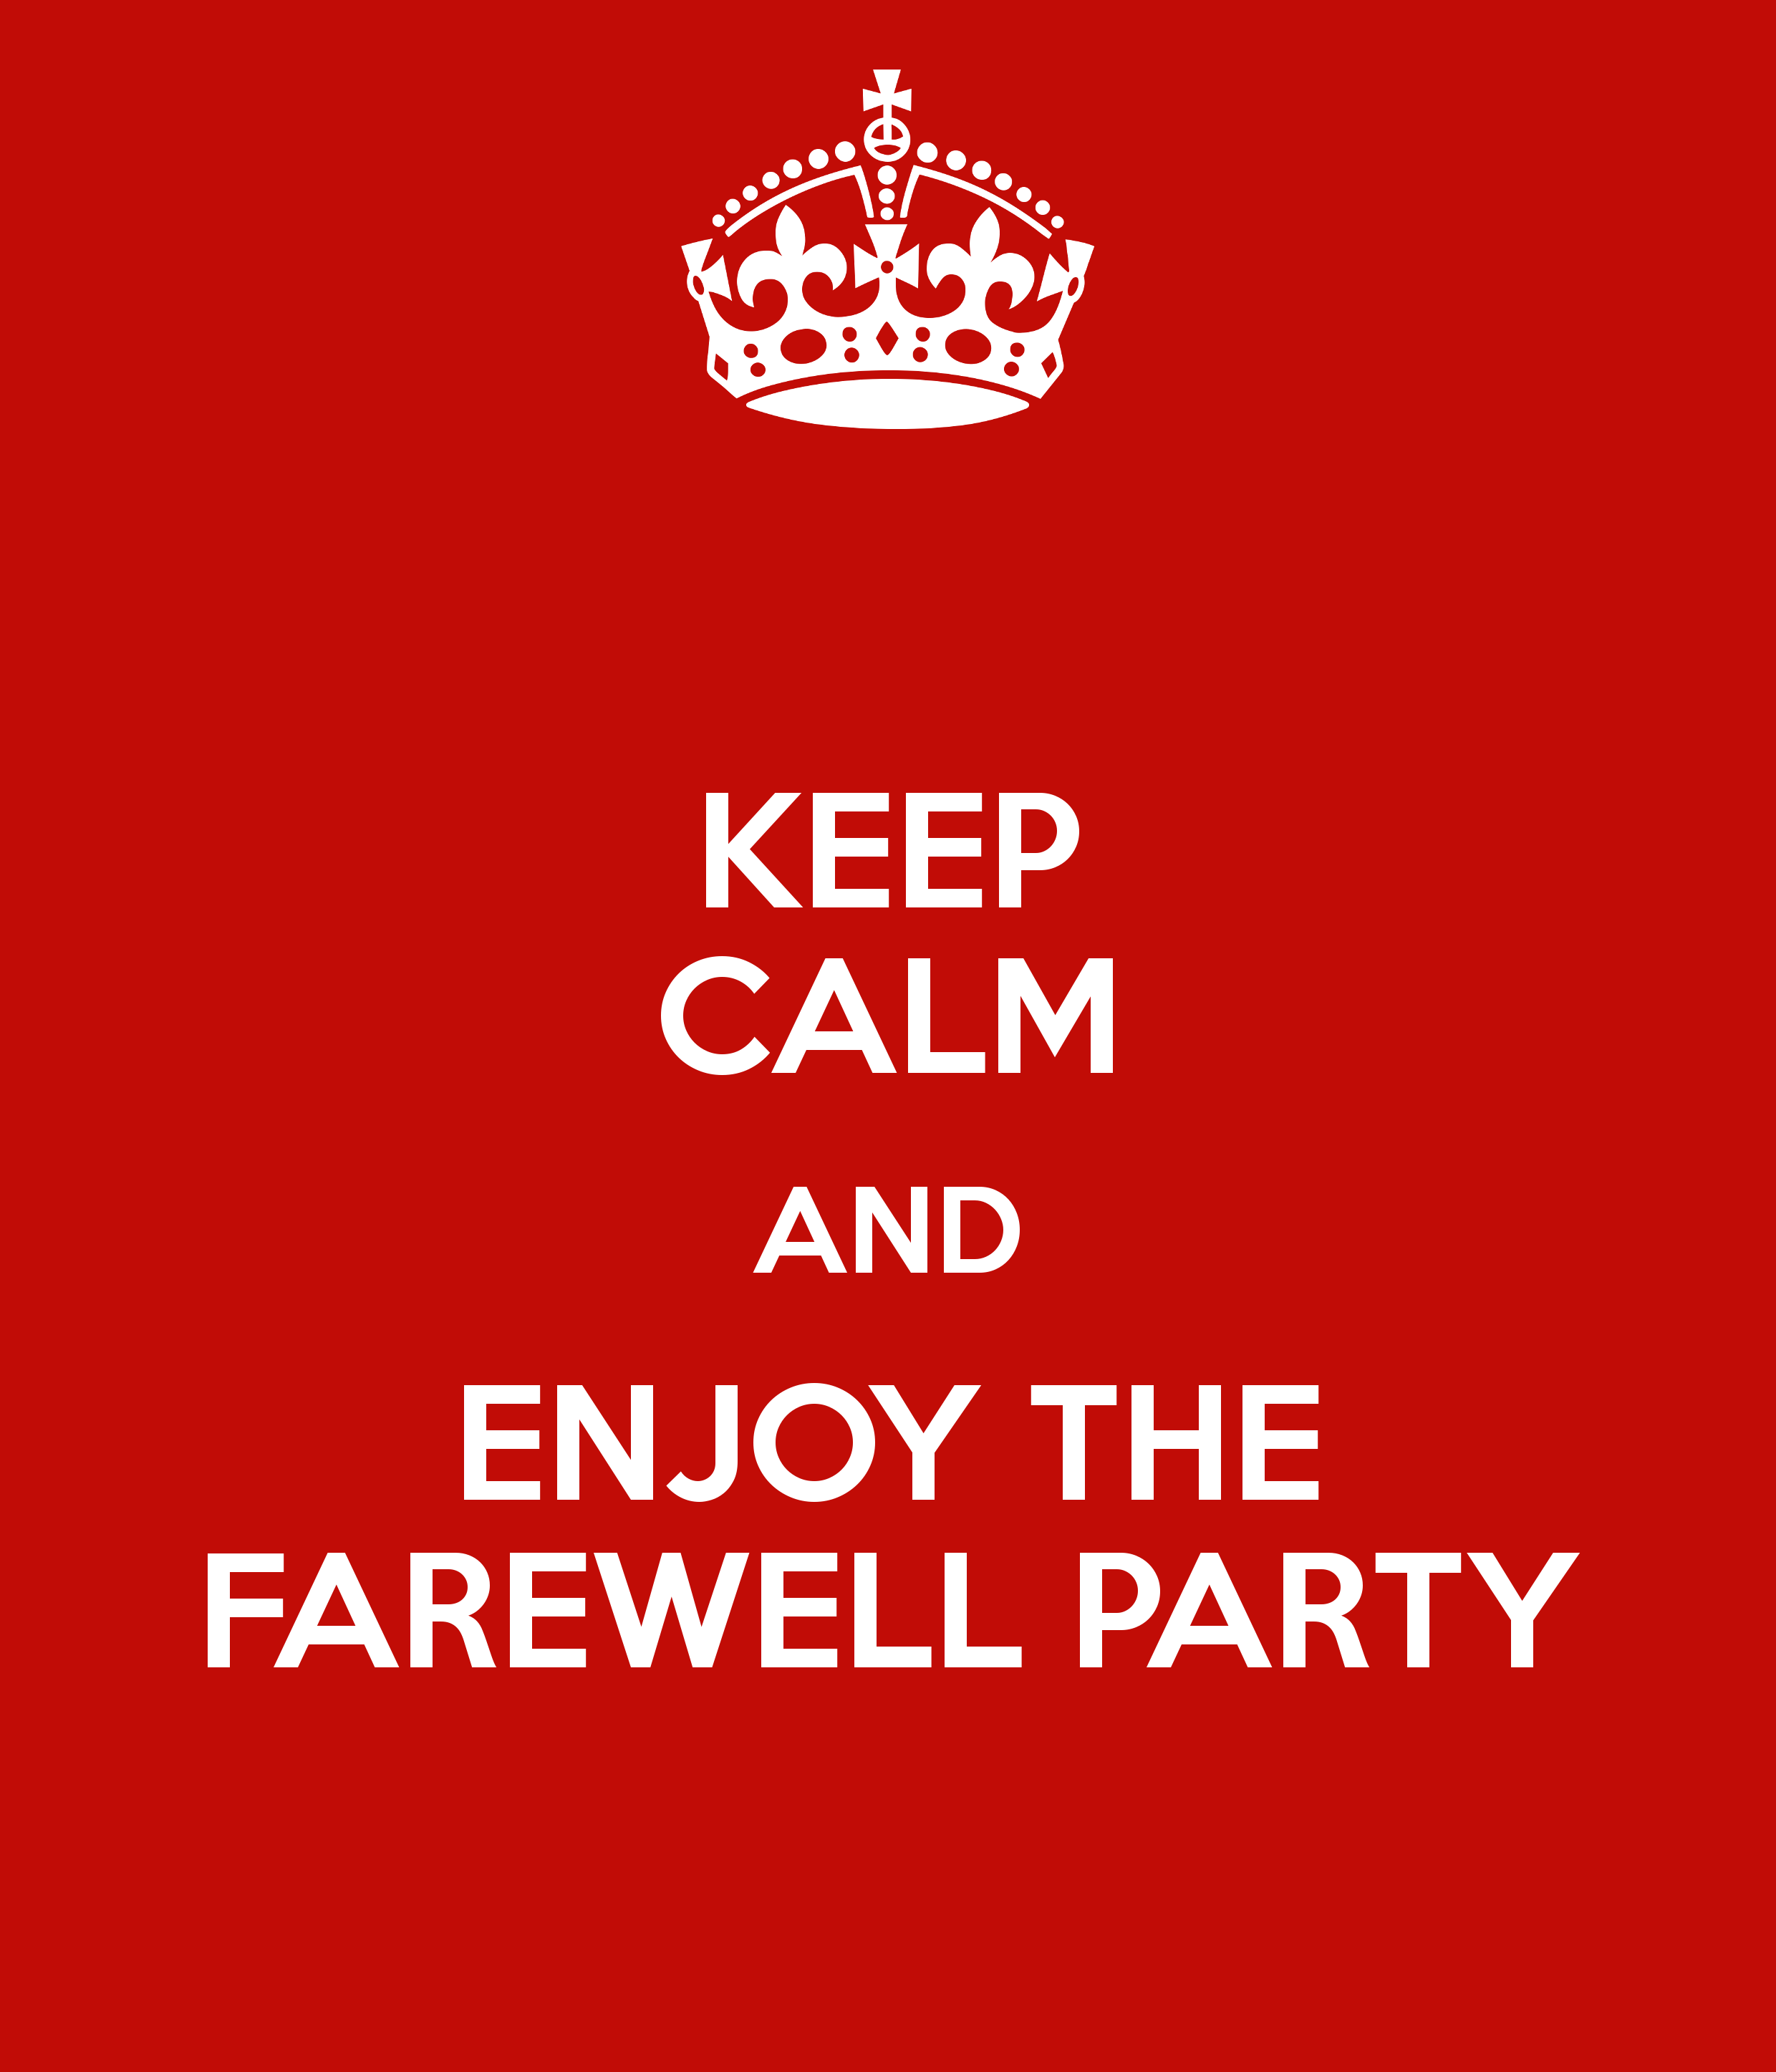 Farewell Party Clipart Going Away Party Meme